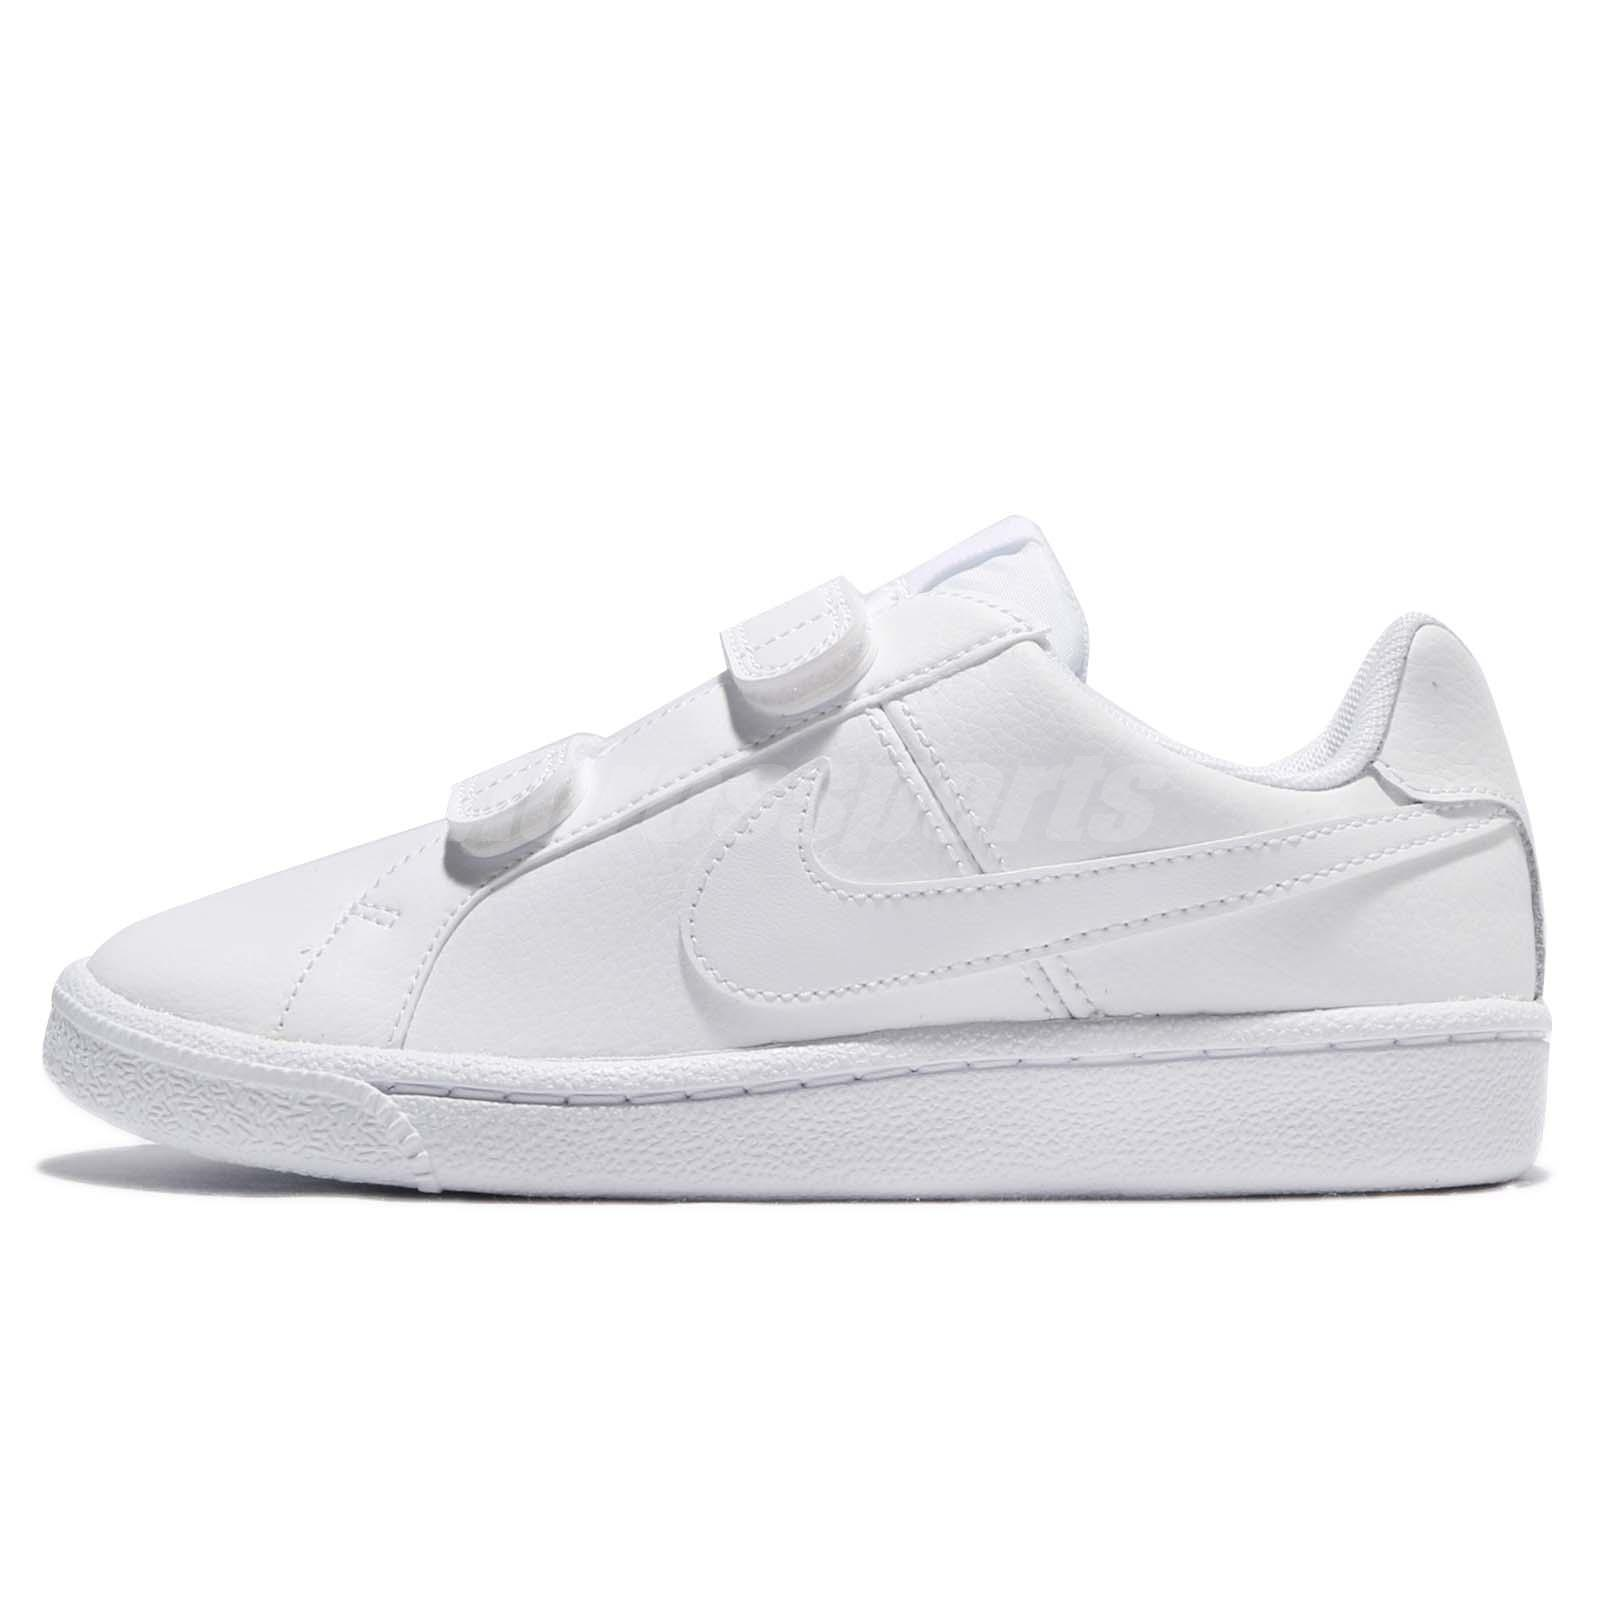 35569e34b Nike Court Royale PSV Triple White Leather Kids Preschool Boys Shoes  833536-102